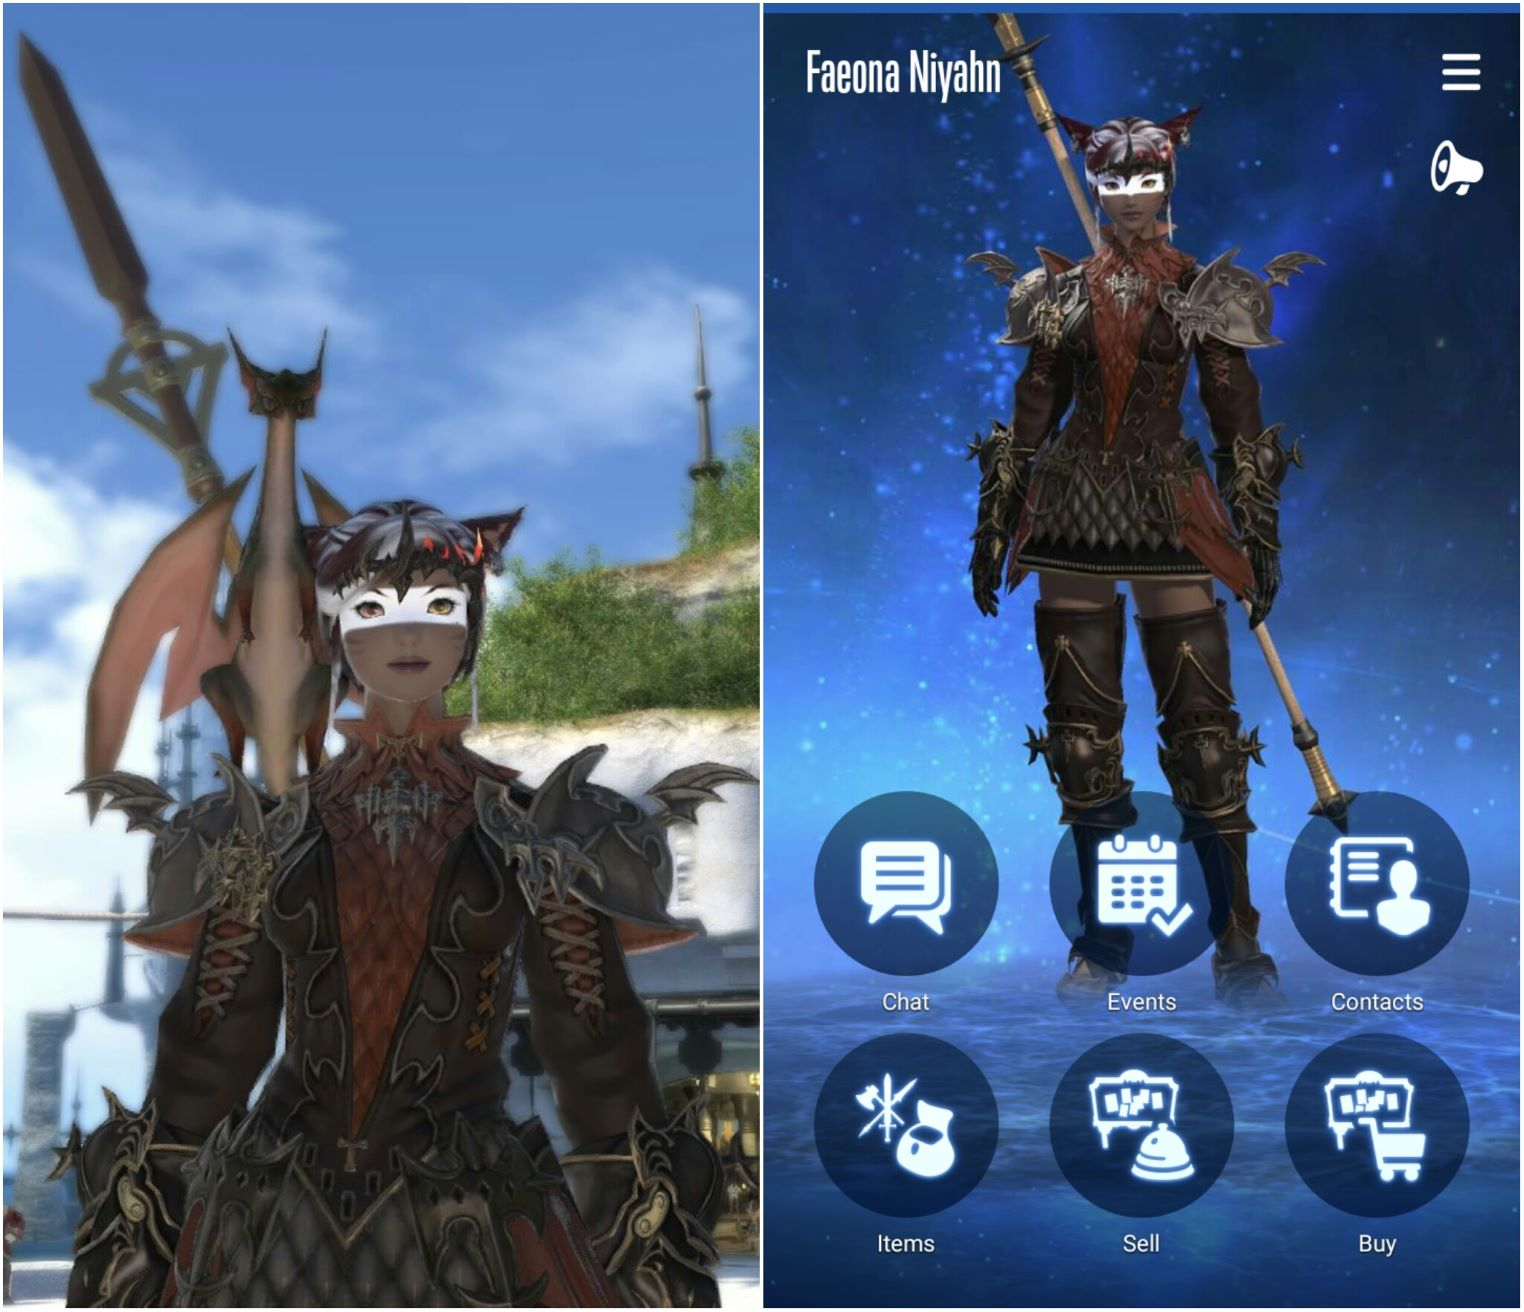 The Final Fantasy XIV Companion app needs a lot of work